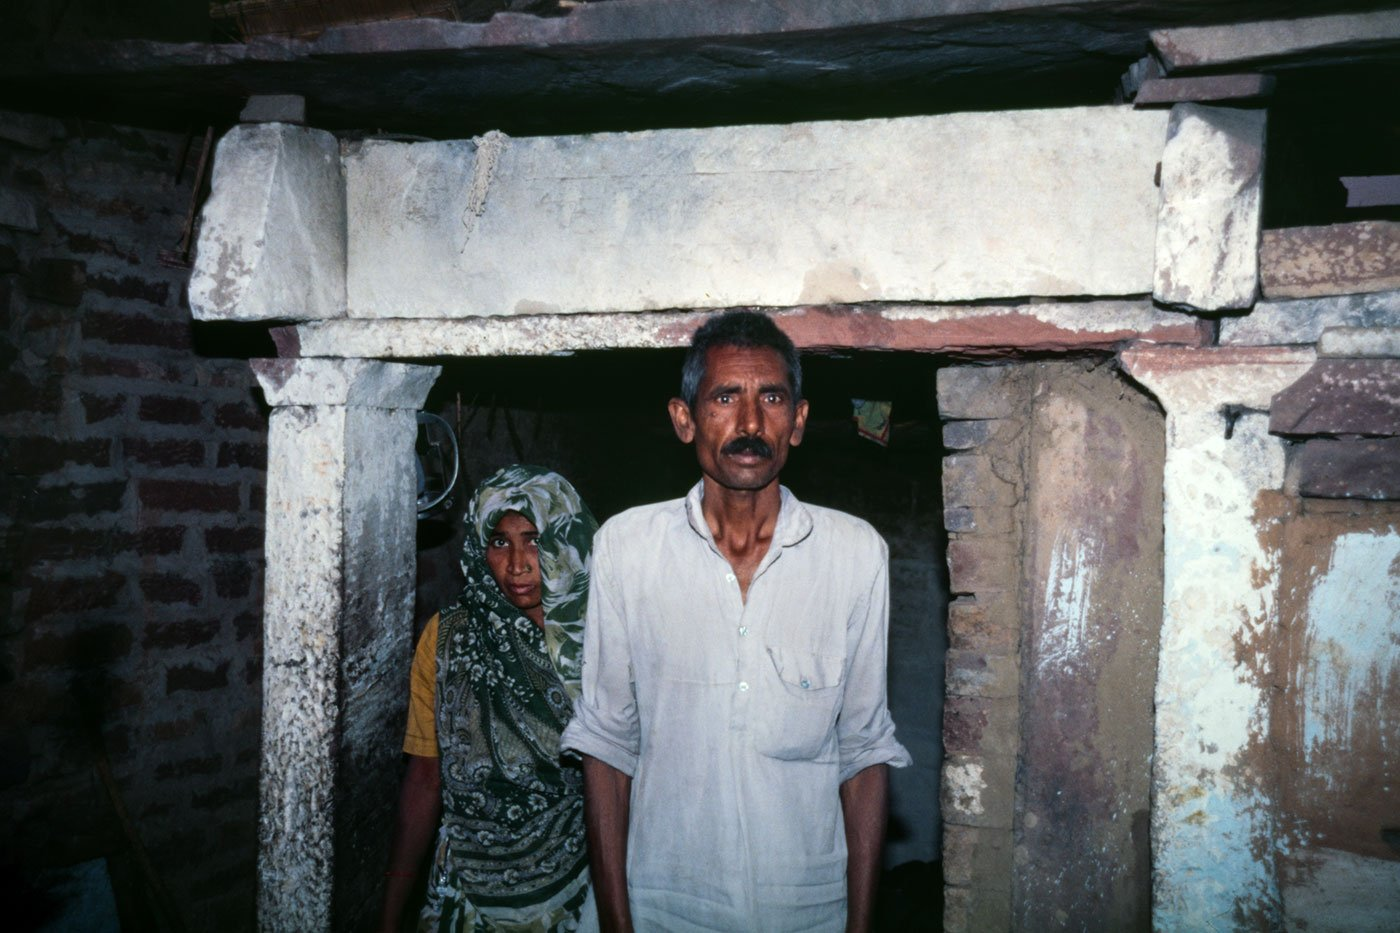 Mangi Lai Jatav and his wife in Naksoda village in Dholpur district